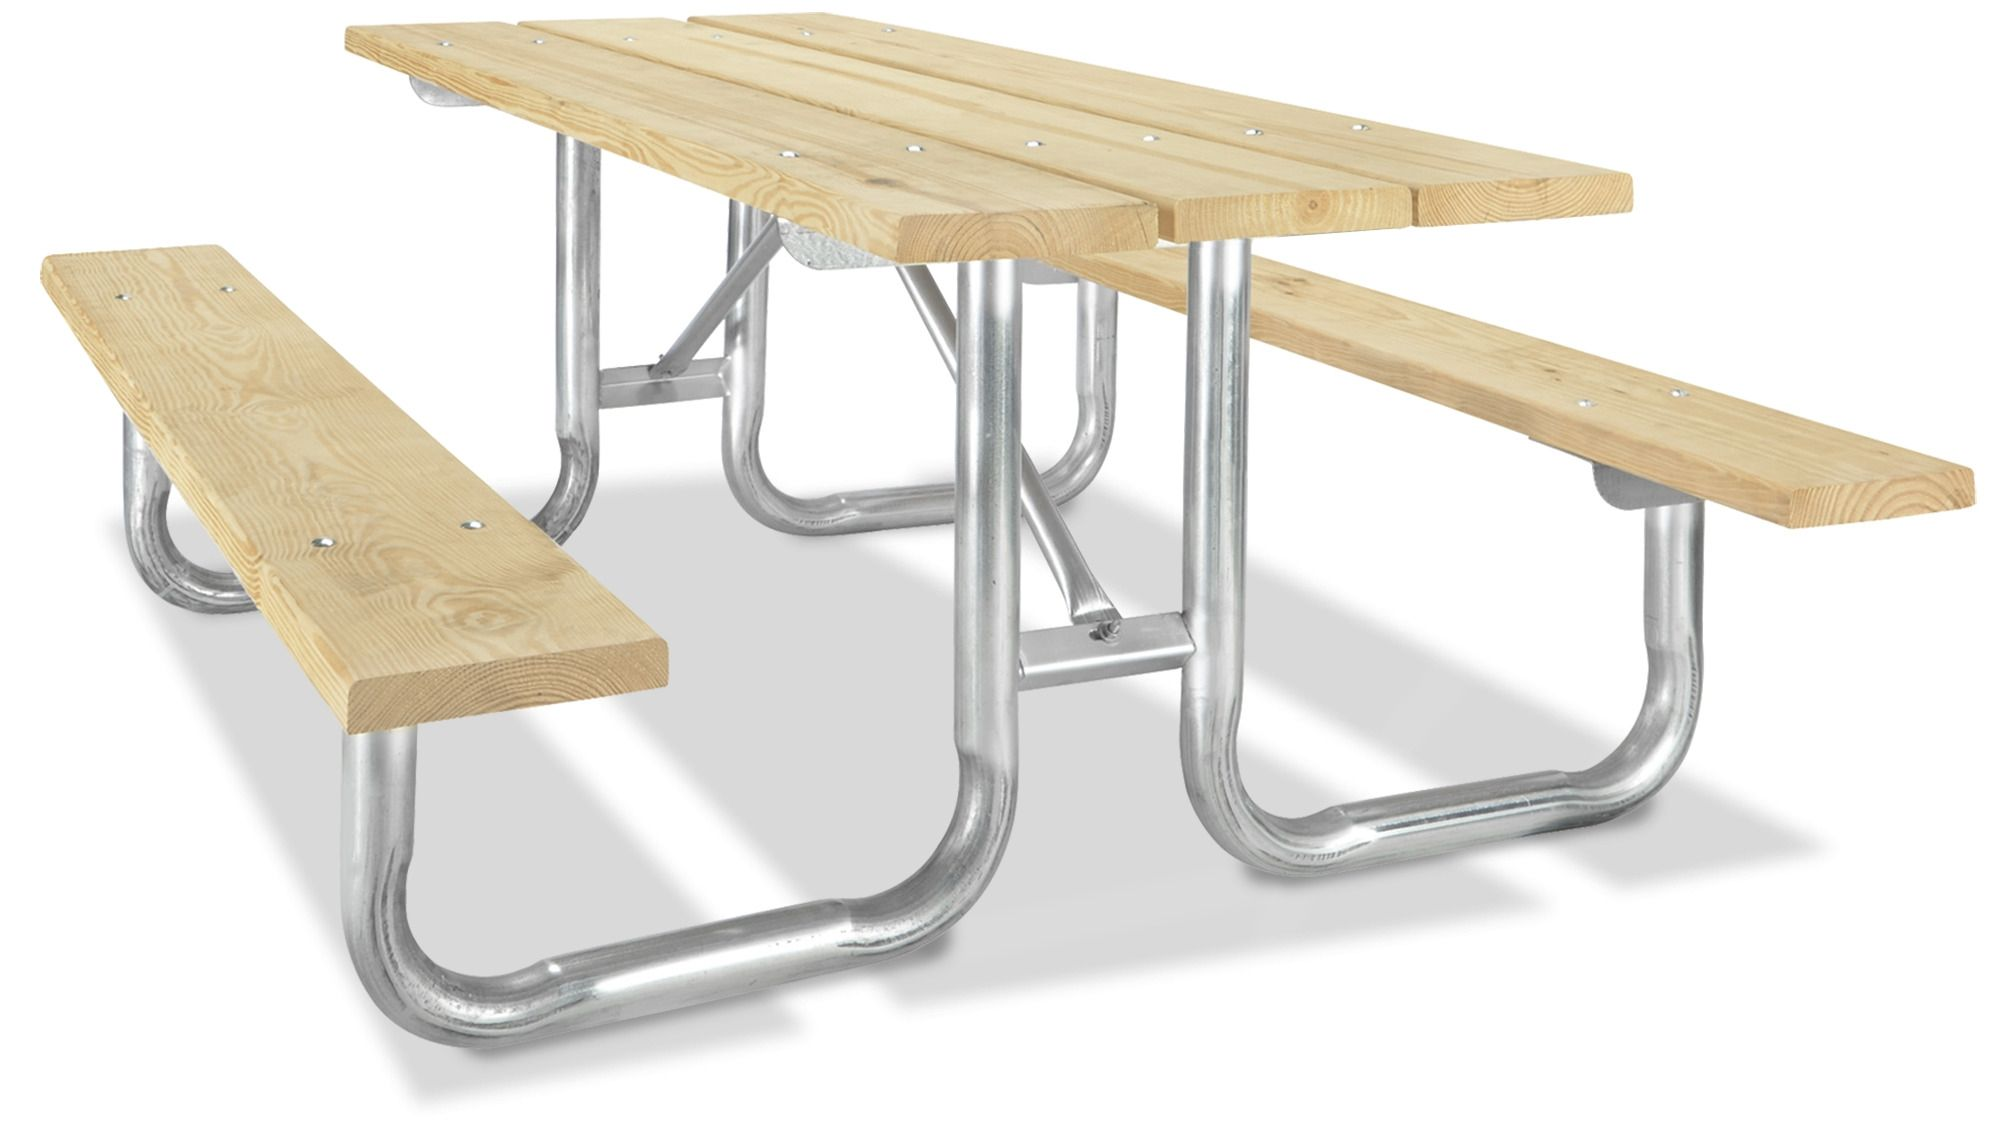 Steel Frame Picnic Table In Stock Uline Madera